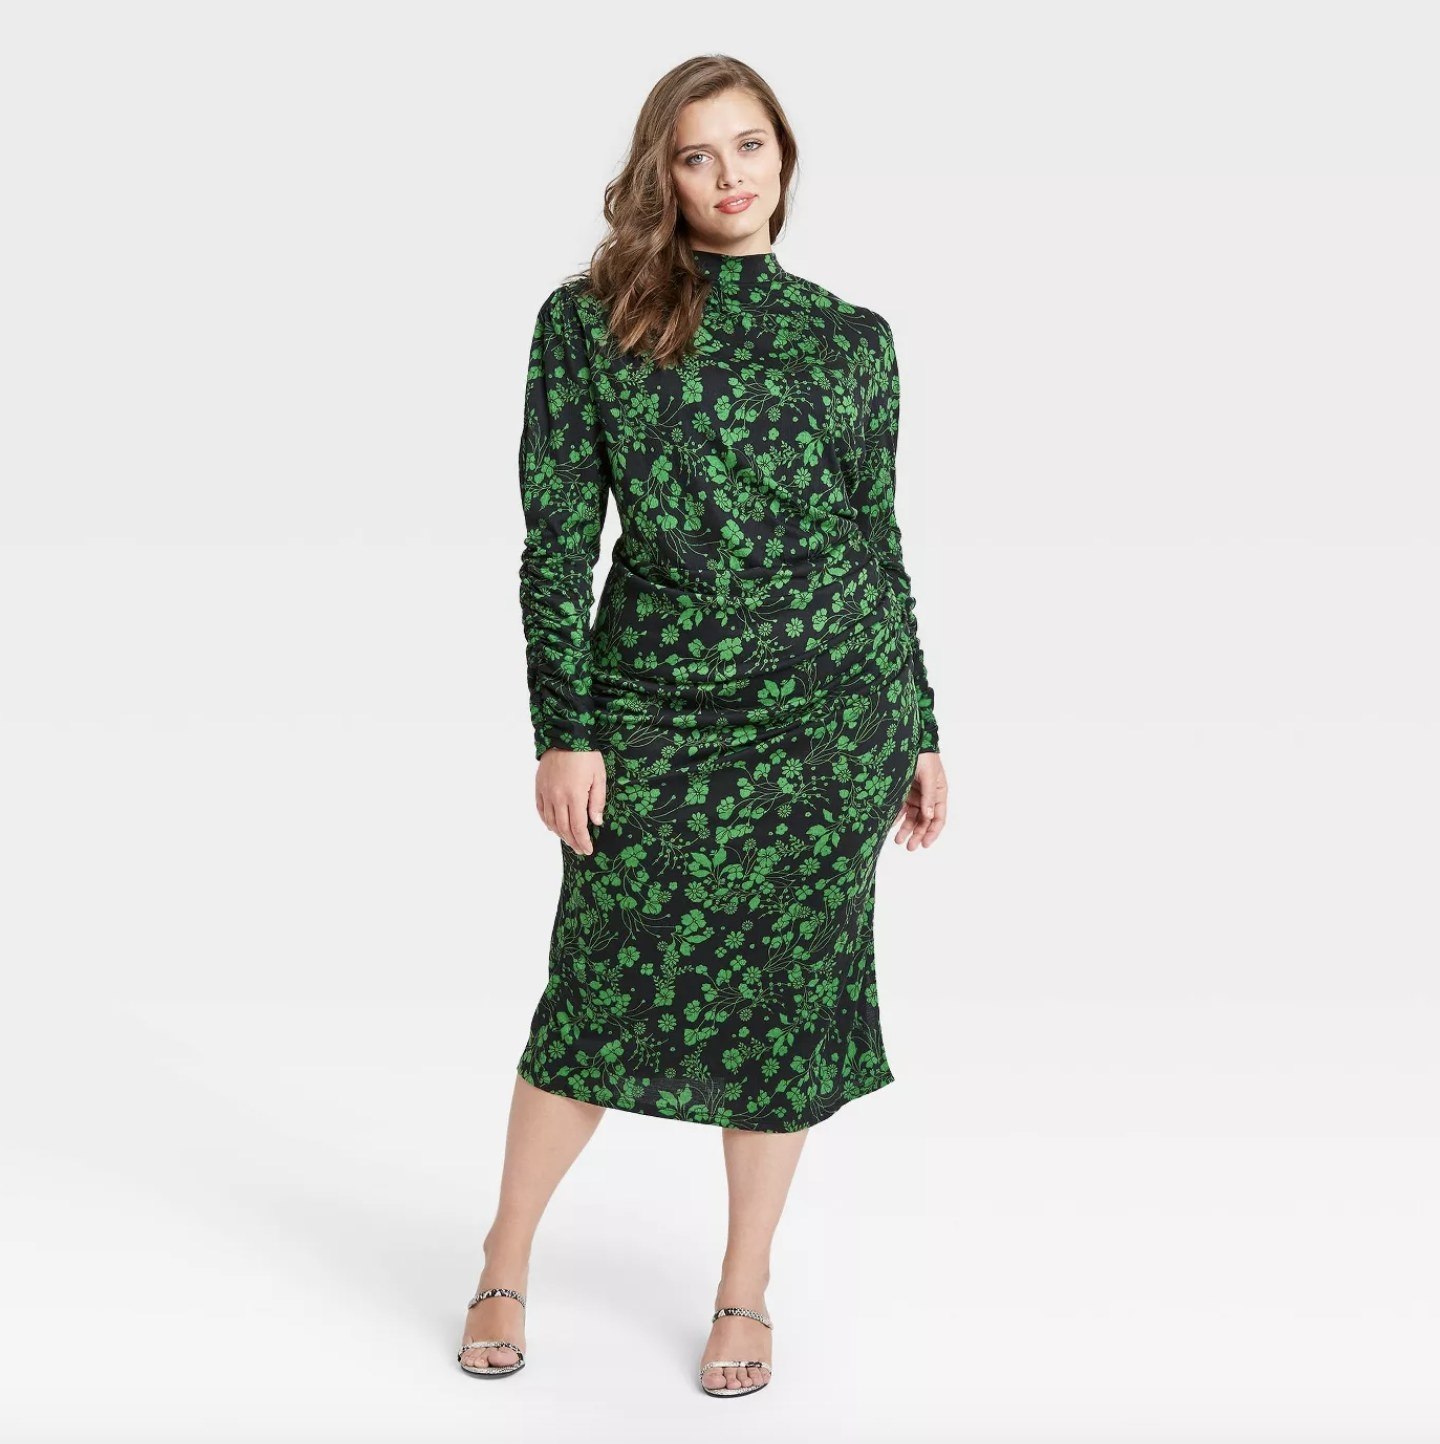 a green floral printed dress with a cinched waist